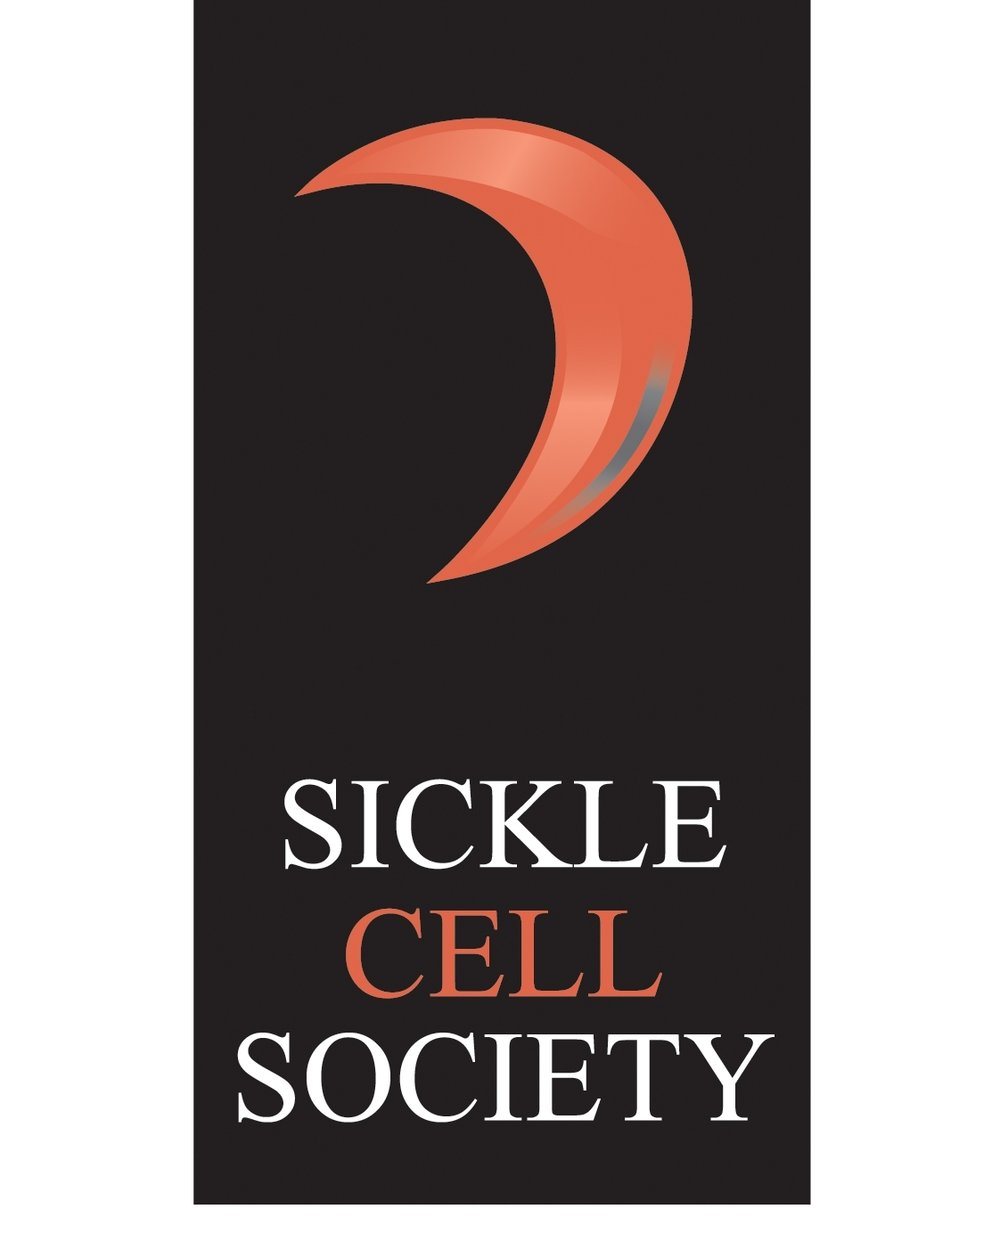 SickleCellLogo-high-resolution-cropped.jpg